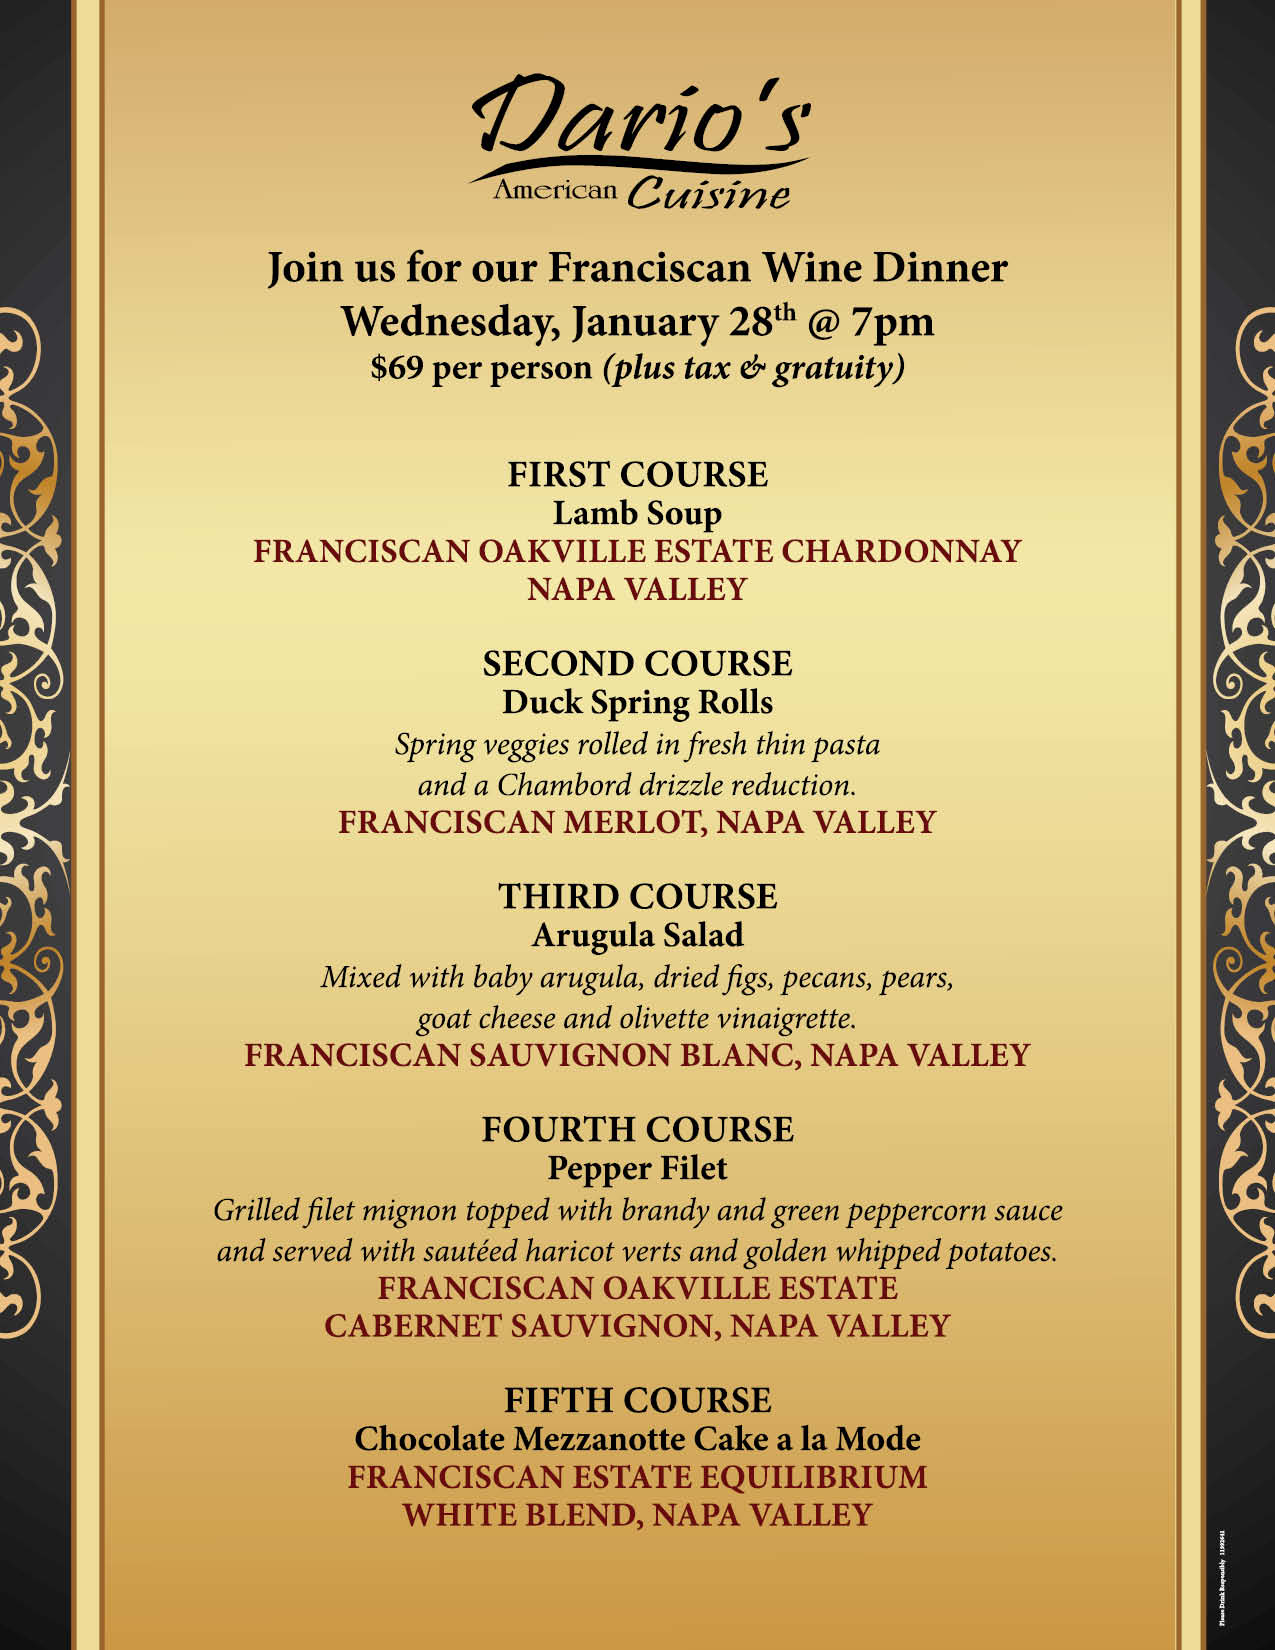 Save the Date for our January Wine Dinner!